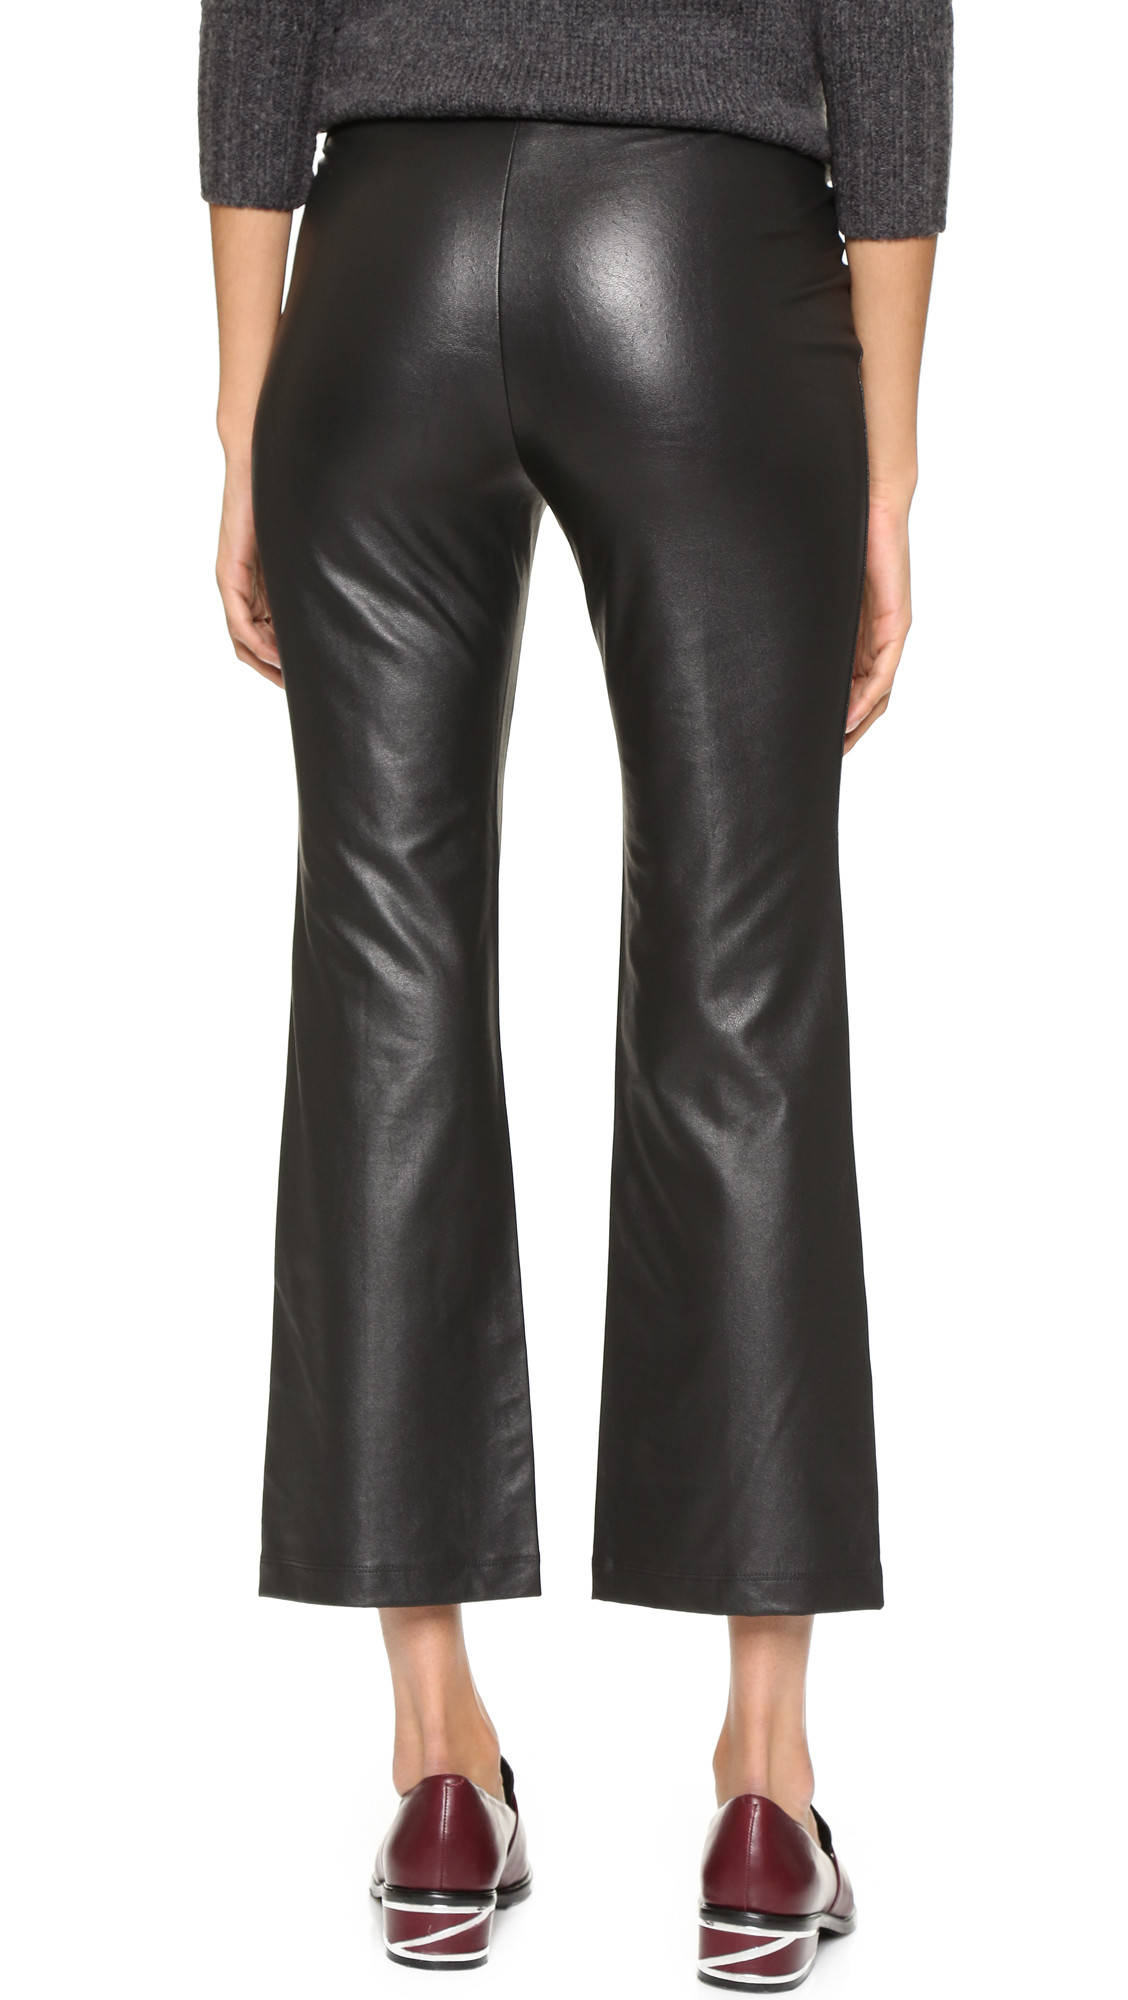 b899c8e45c102b Gallery. Previously sold at: Shopbop · Women's Black Leather Pants Women's  Faux ...